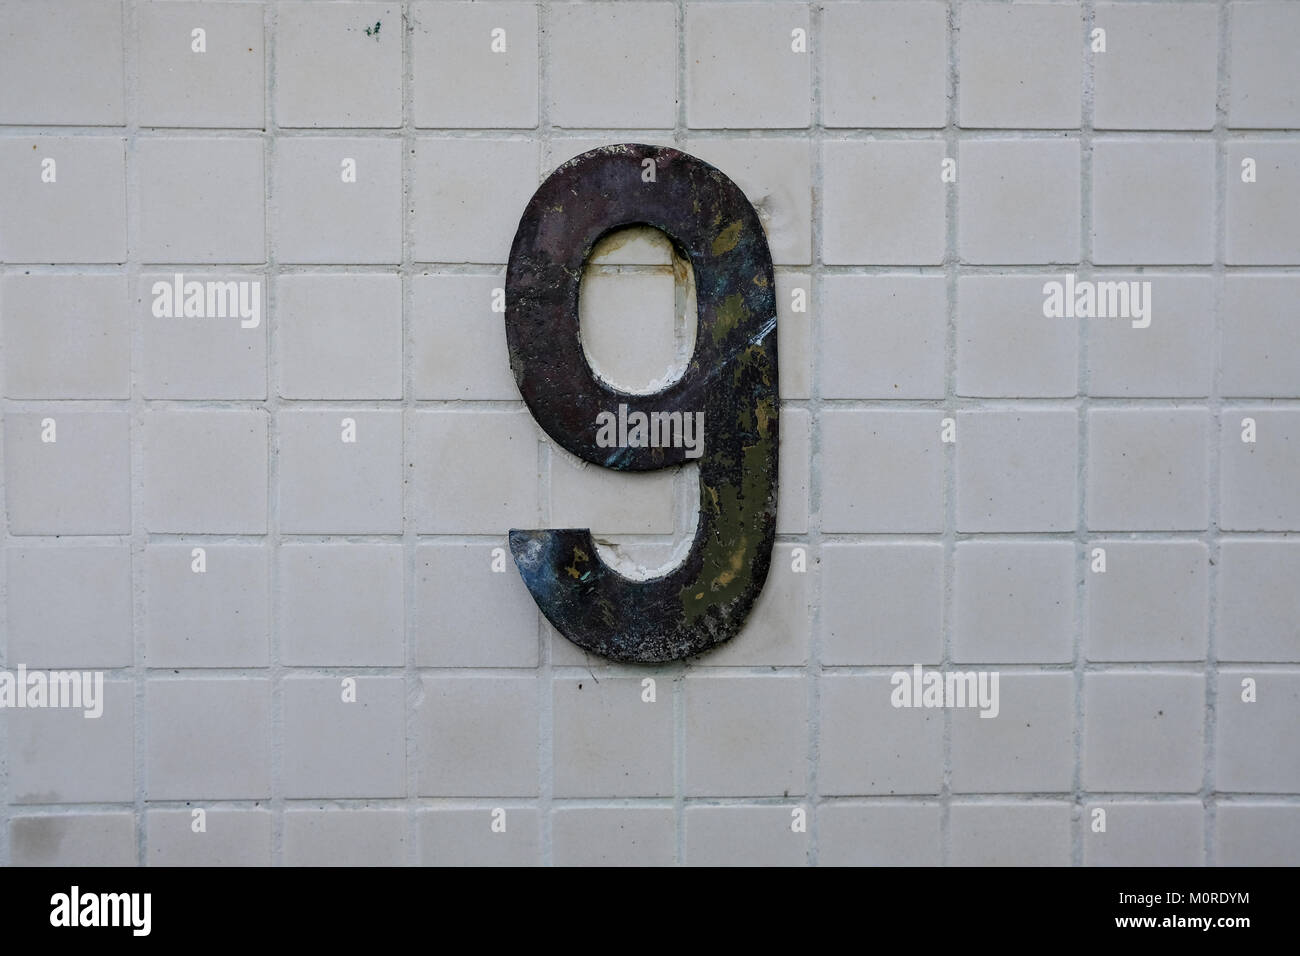 numbers, pictures of numbers taken on houses along the streets - Stock Image